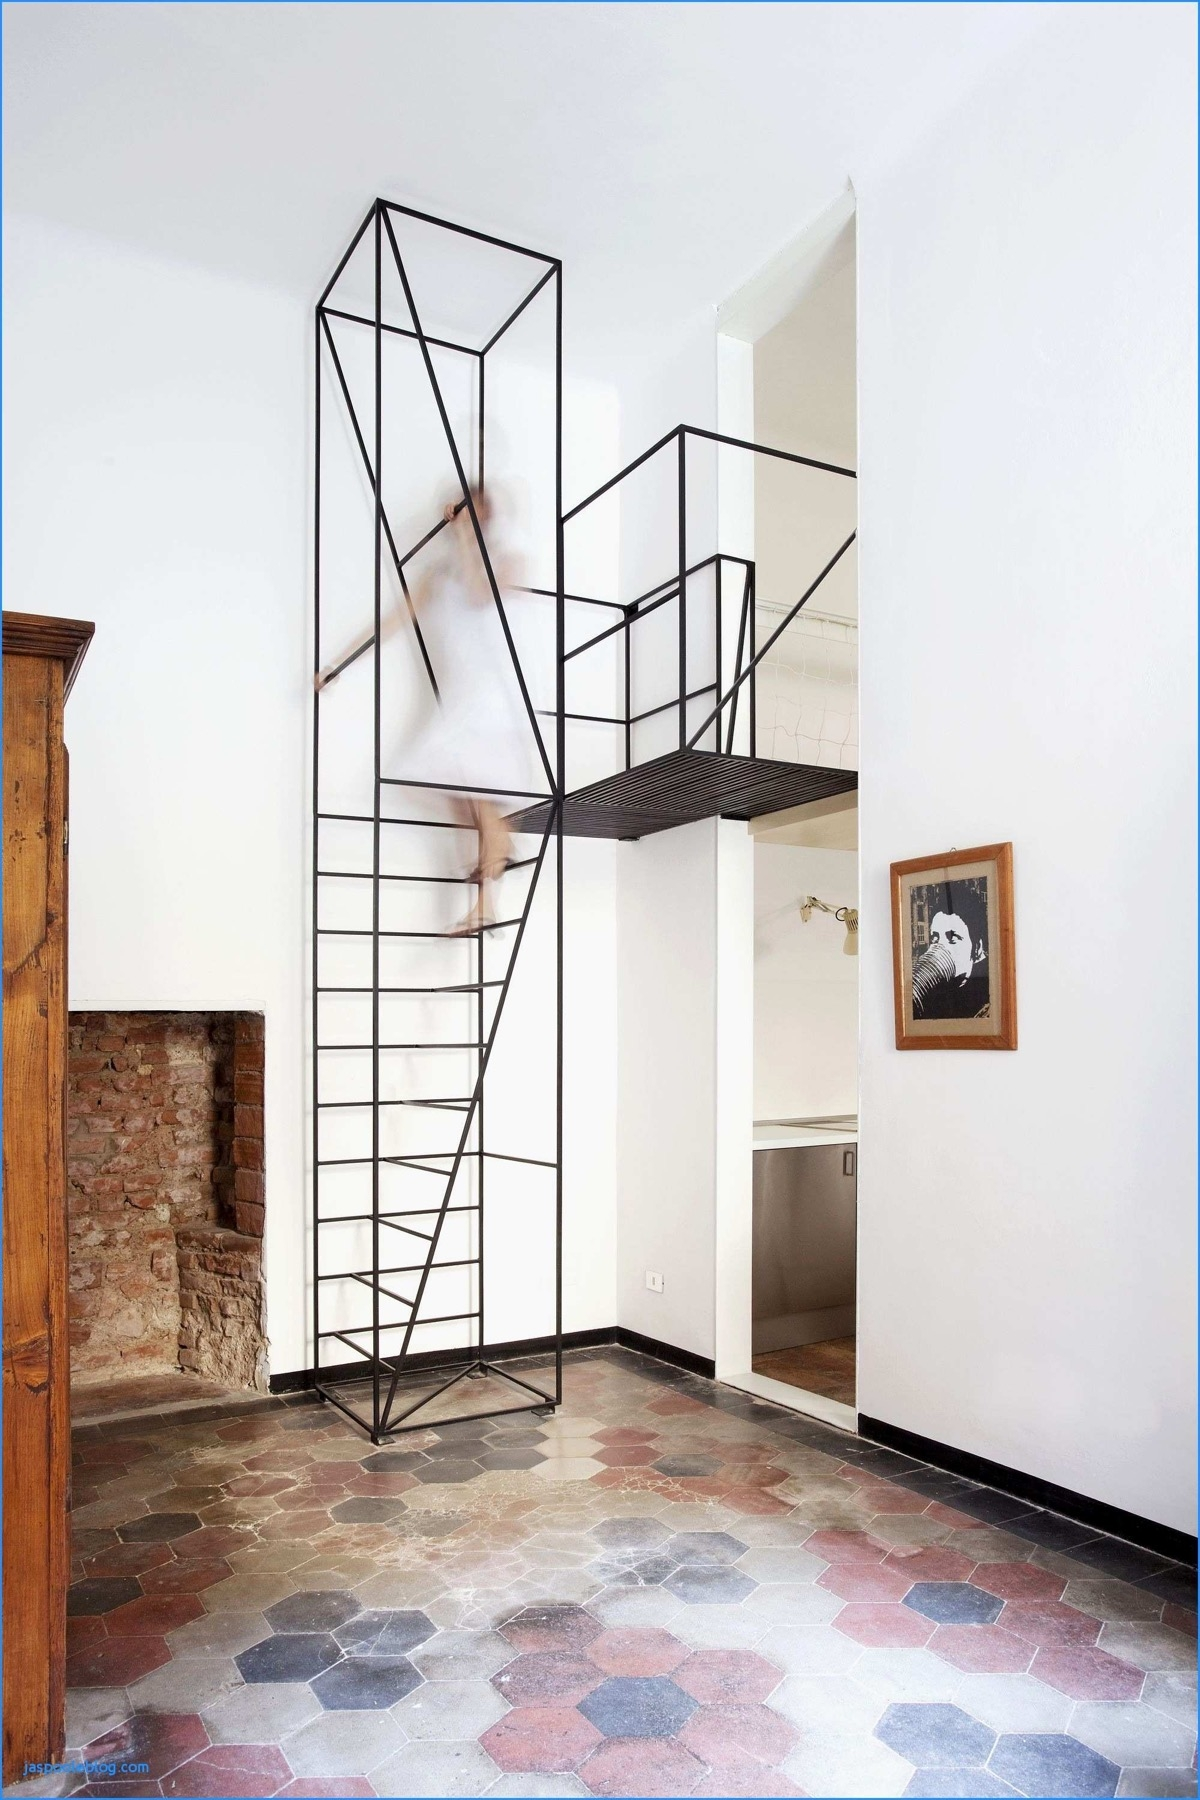 51 Stunning Staircase Design Ideas   Steel Ladder Design For Home   Wrought Iron   House   Residential   Interior   Contemporary